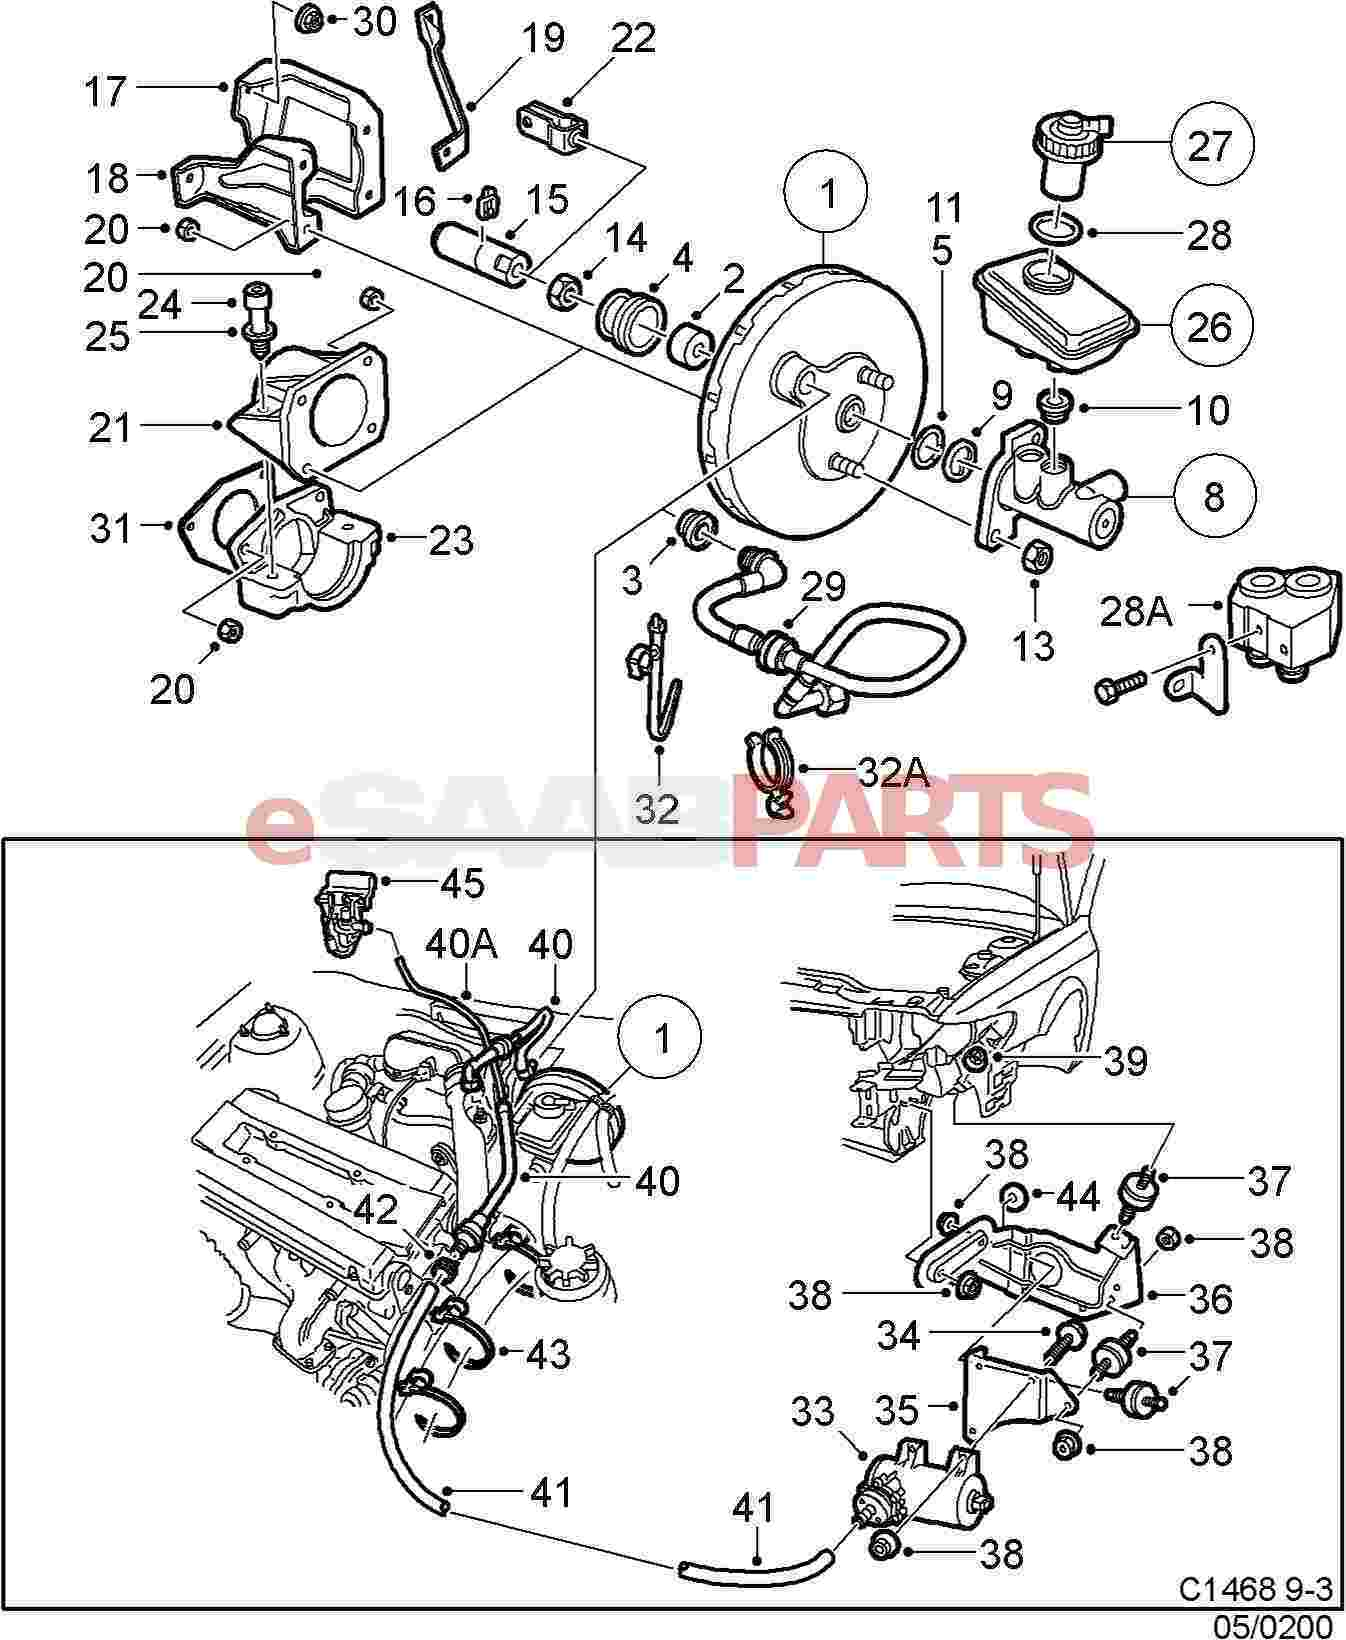 2007 saab 9 3 vacuum diagram  u2022 wiring diagram for free